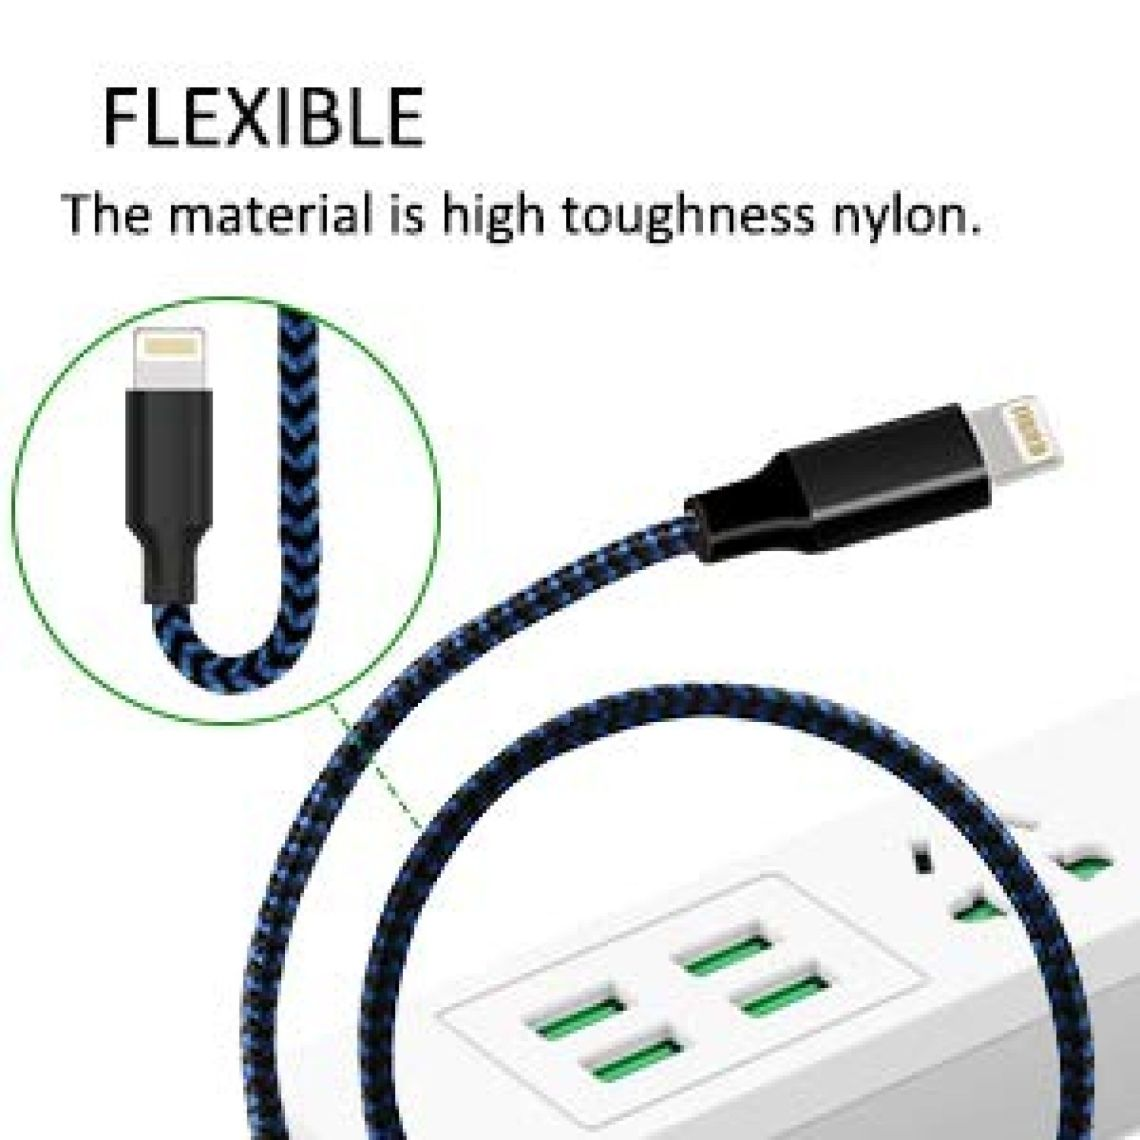 Amazon.com: Youer Phone Cable 3Pack 6FT Nylon Braided USB Charging & Syncing Cord Compatible with iPhone X iPhone 8 8 Plus 7 7 Plus 6s 6s Plus 6 6 Plus iPad iPod Nano - Black Blue: Cell Phones & Accessories